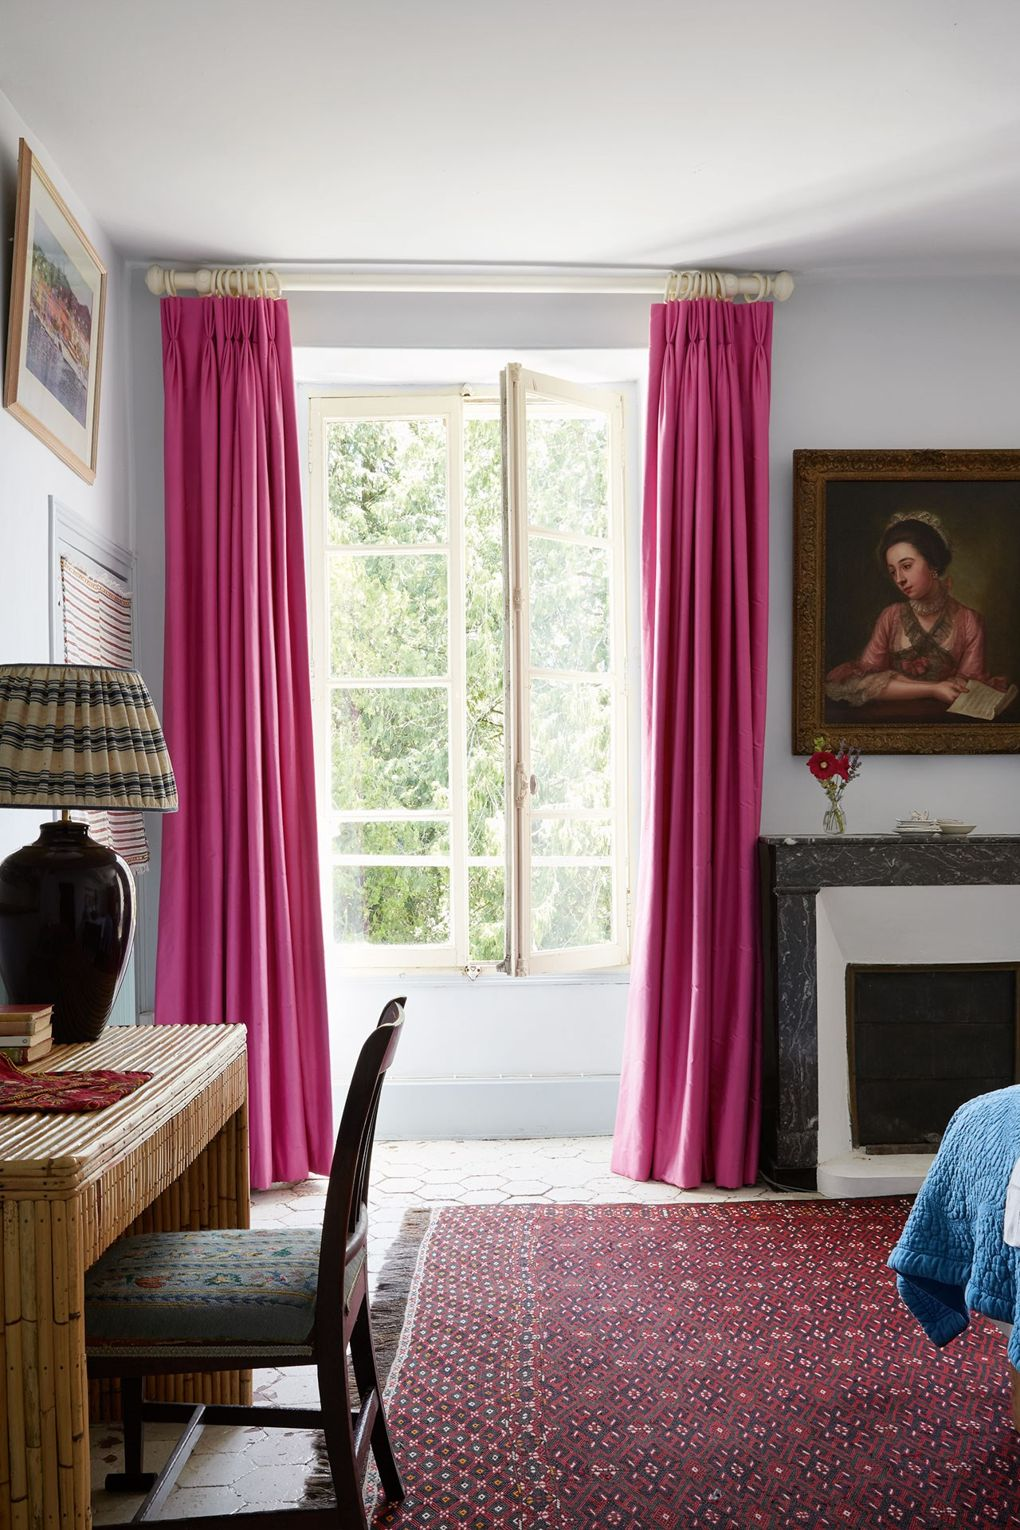 Pink Curtains Susan Deliss French Country Home Bedroom